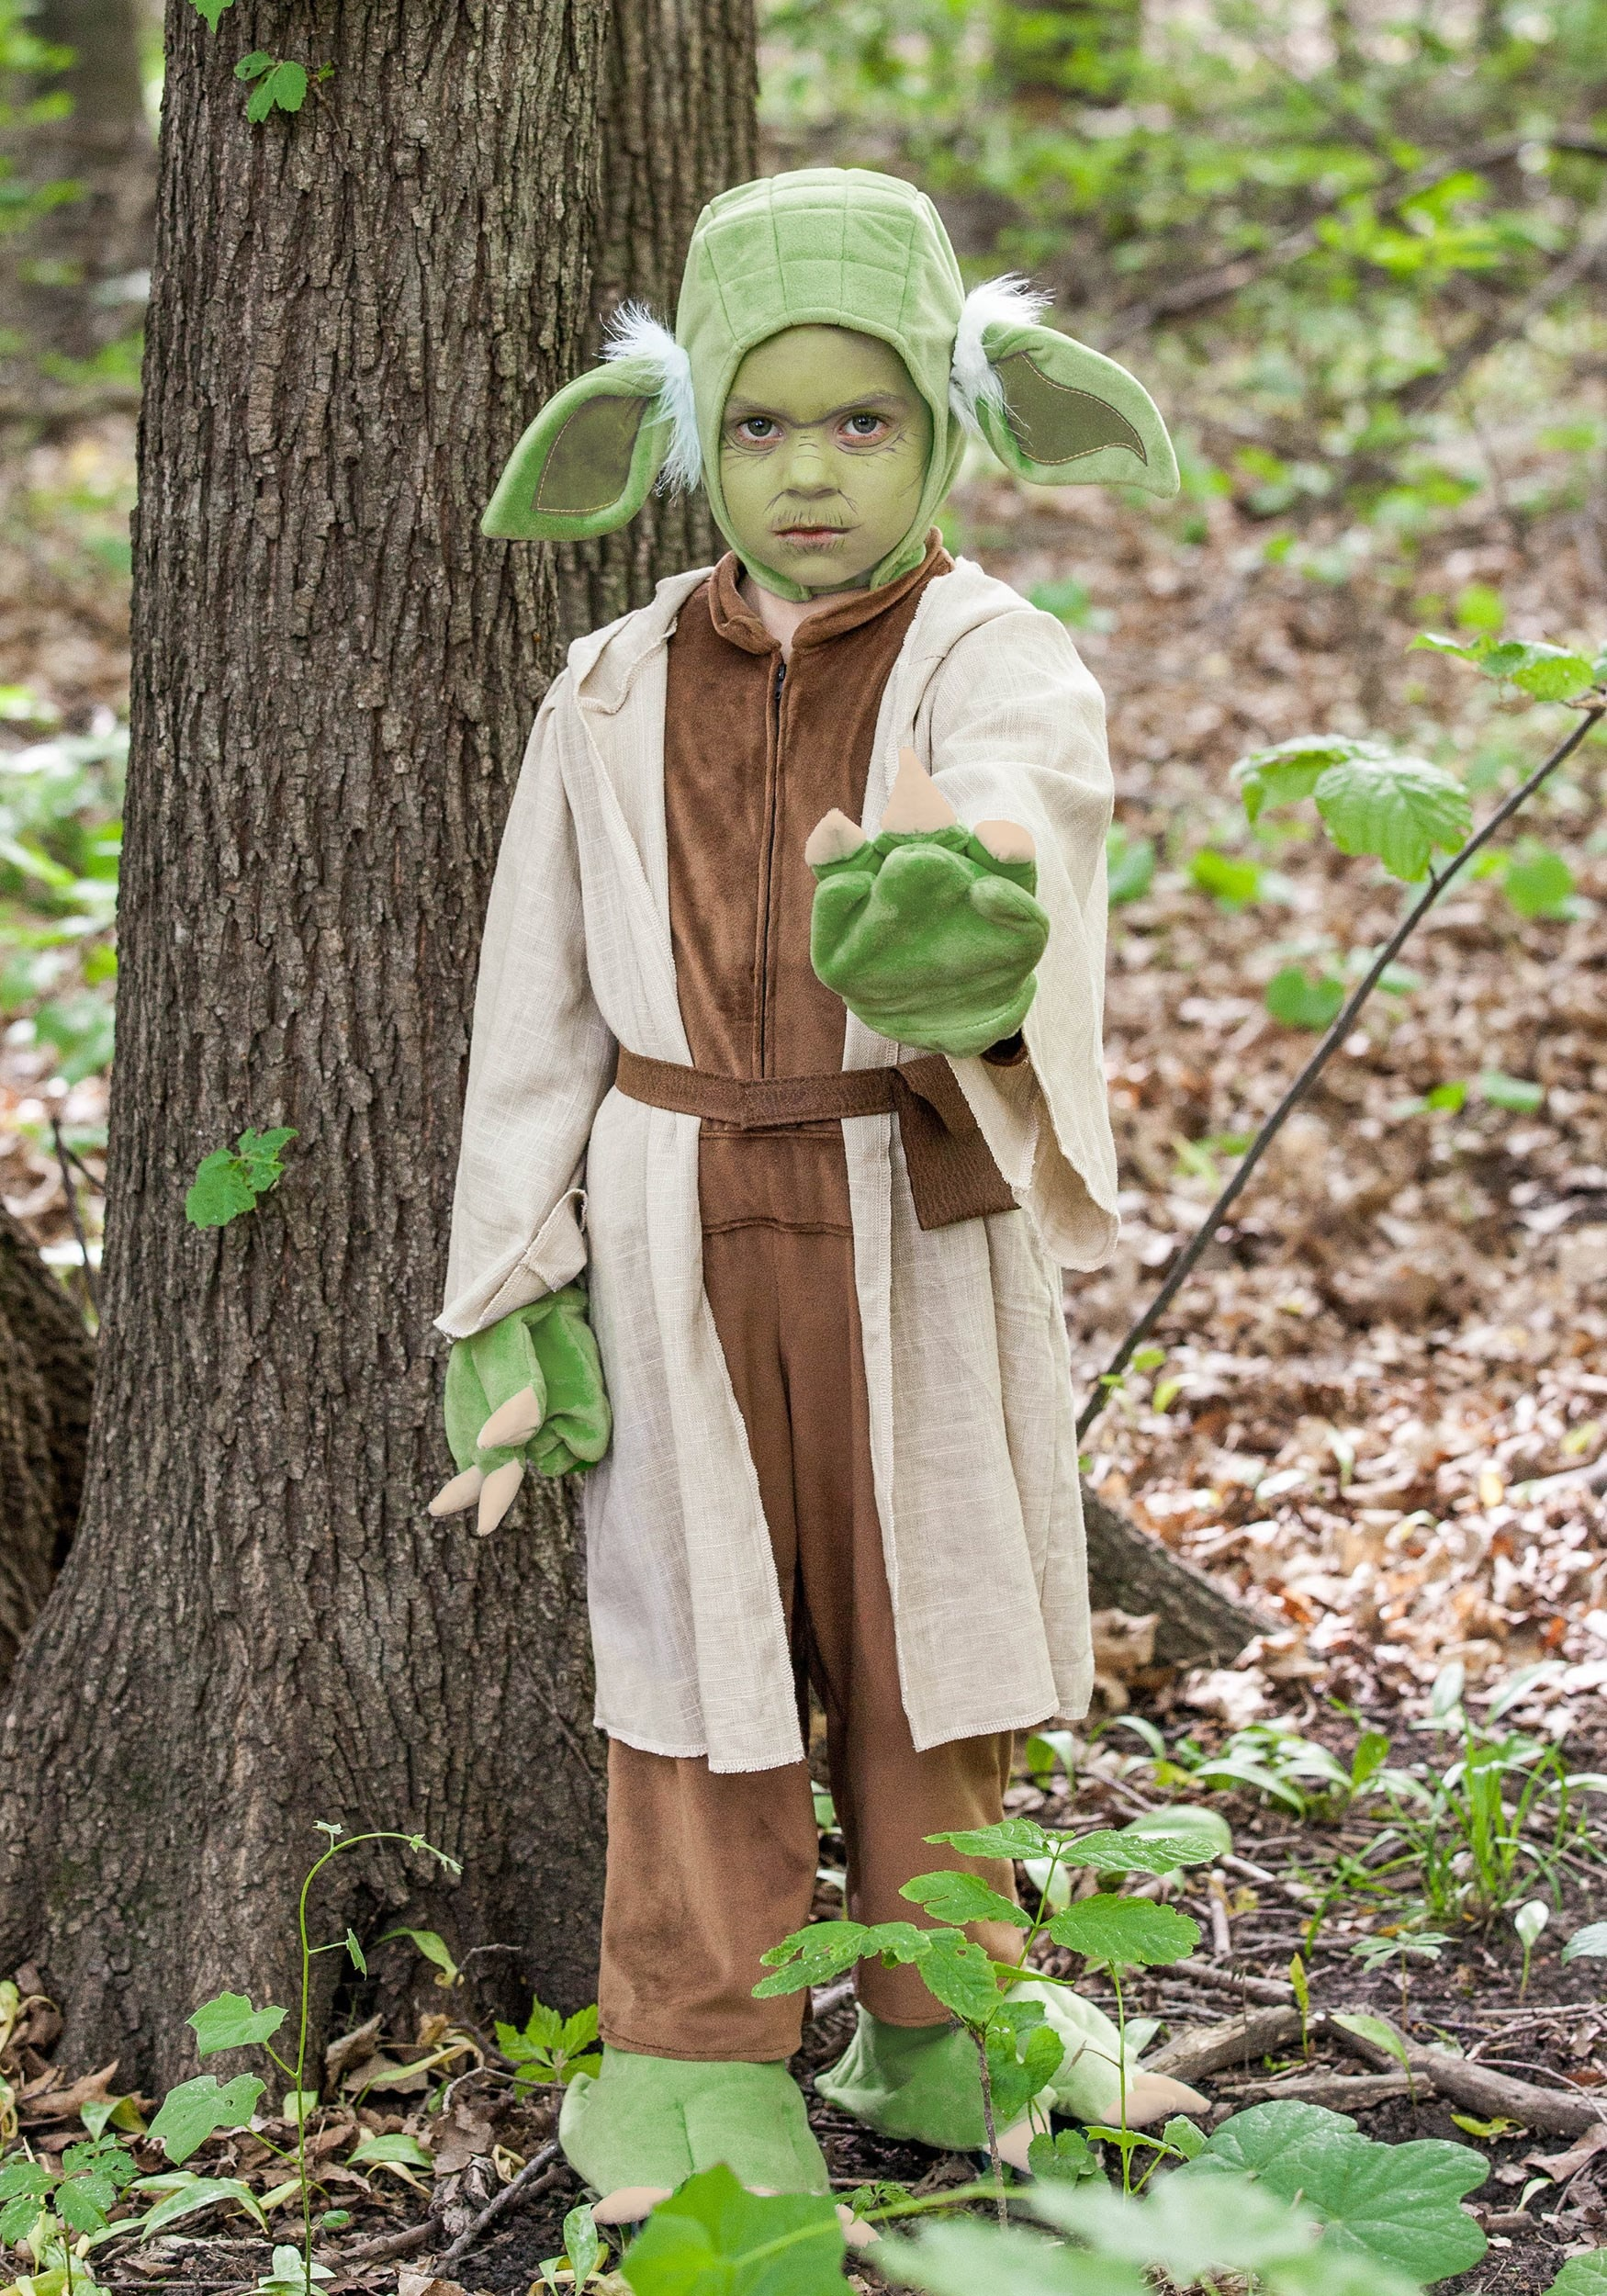 STAR WARS YODA KIDS COSTUME boys child set includes Jumpsuit Hooded Robe Headpiece Belt w/ Attached Pouch Pair of Gloves Pair of Booties